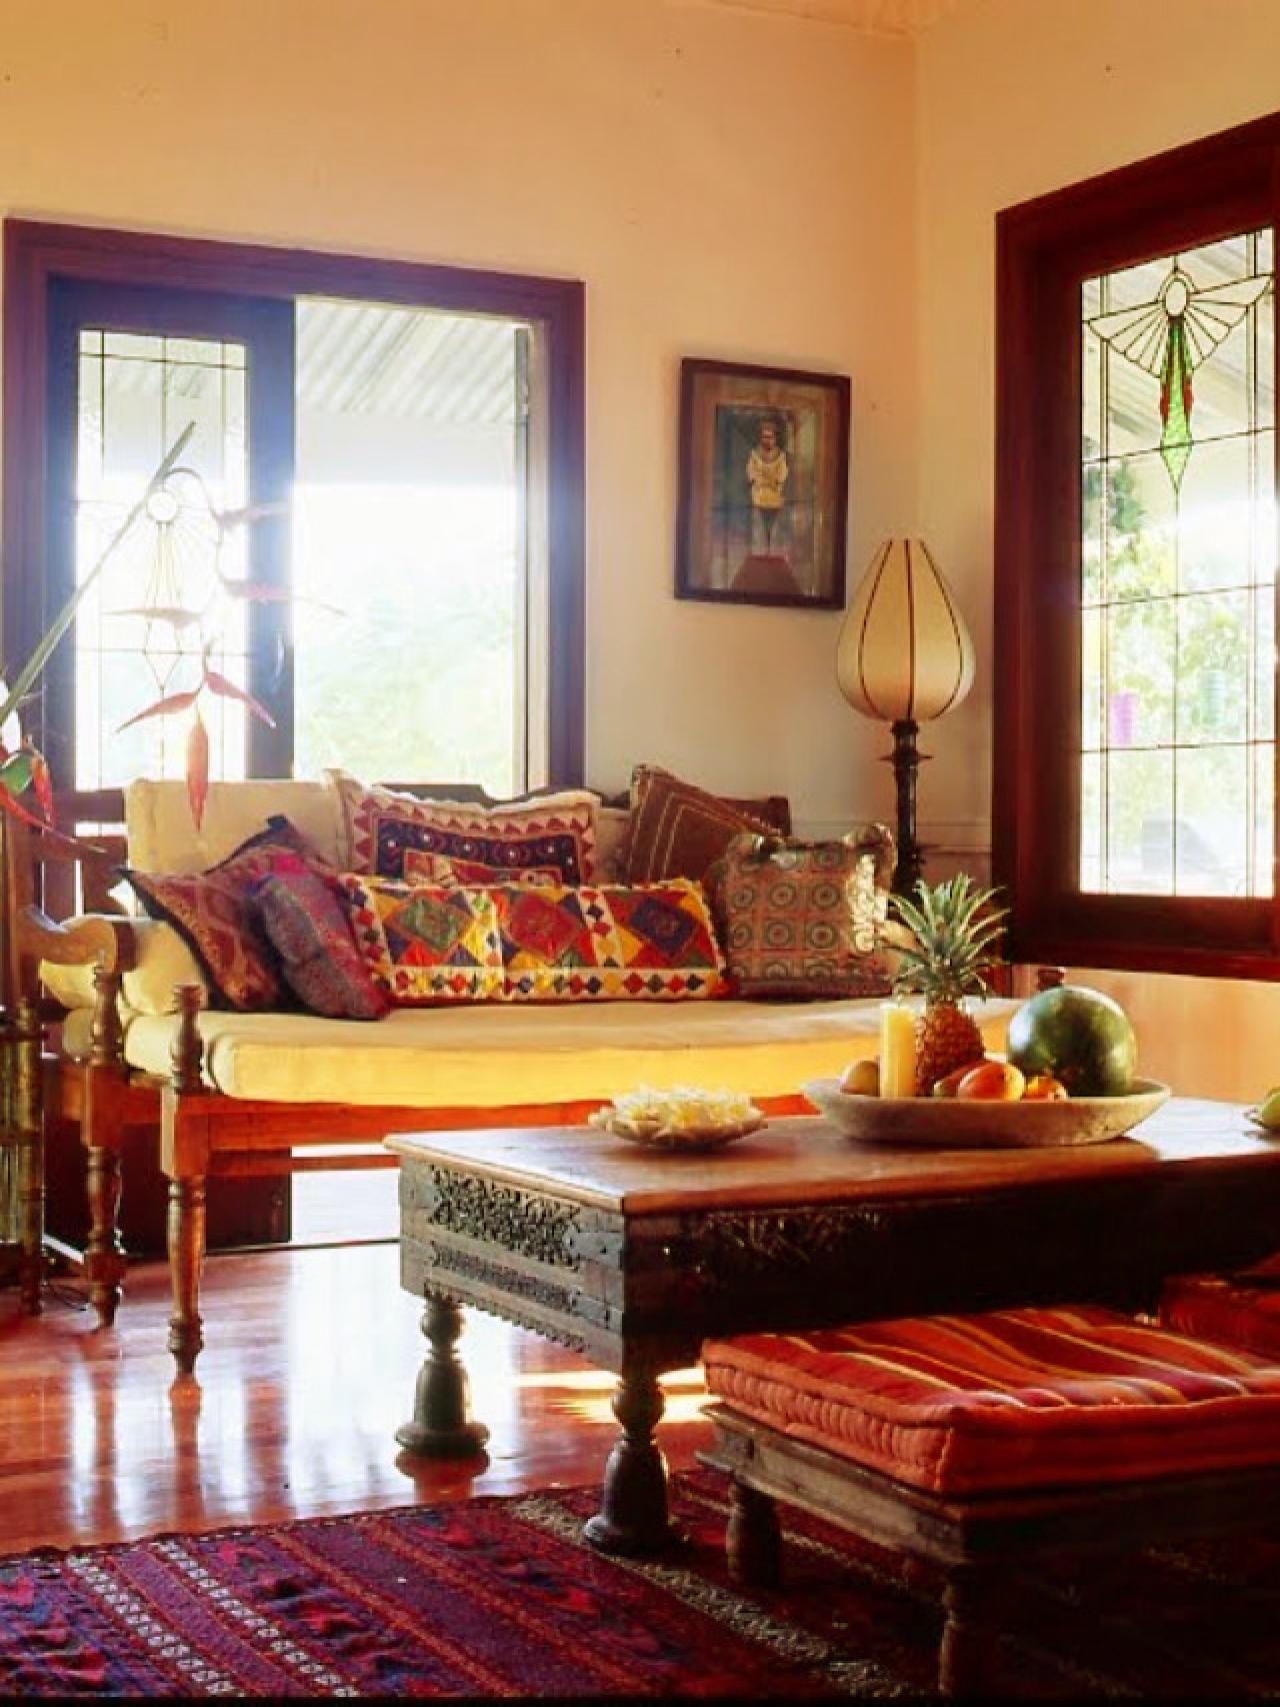 12 spaces inspired by india interior design styles and for Designs of chairs for living room